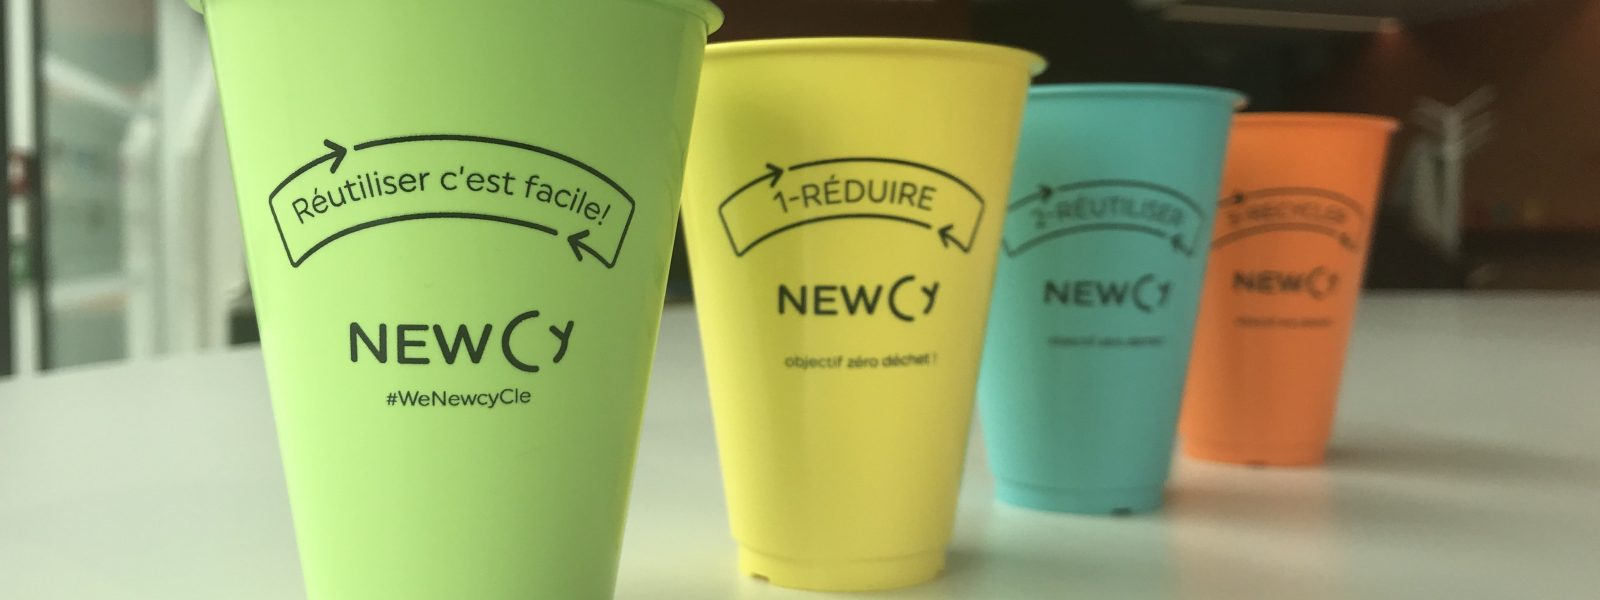 Newcy: les gobelets recyclabes